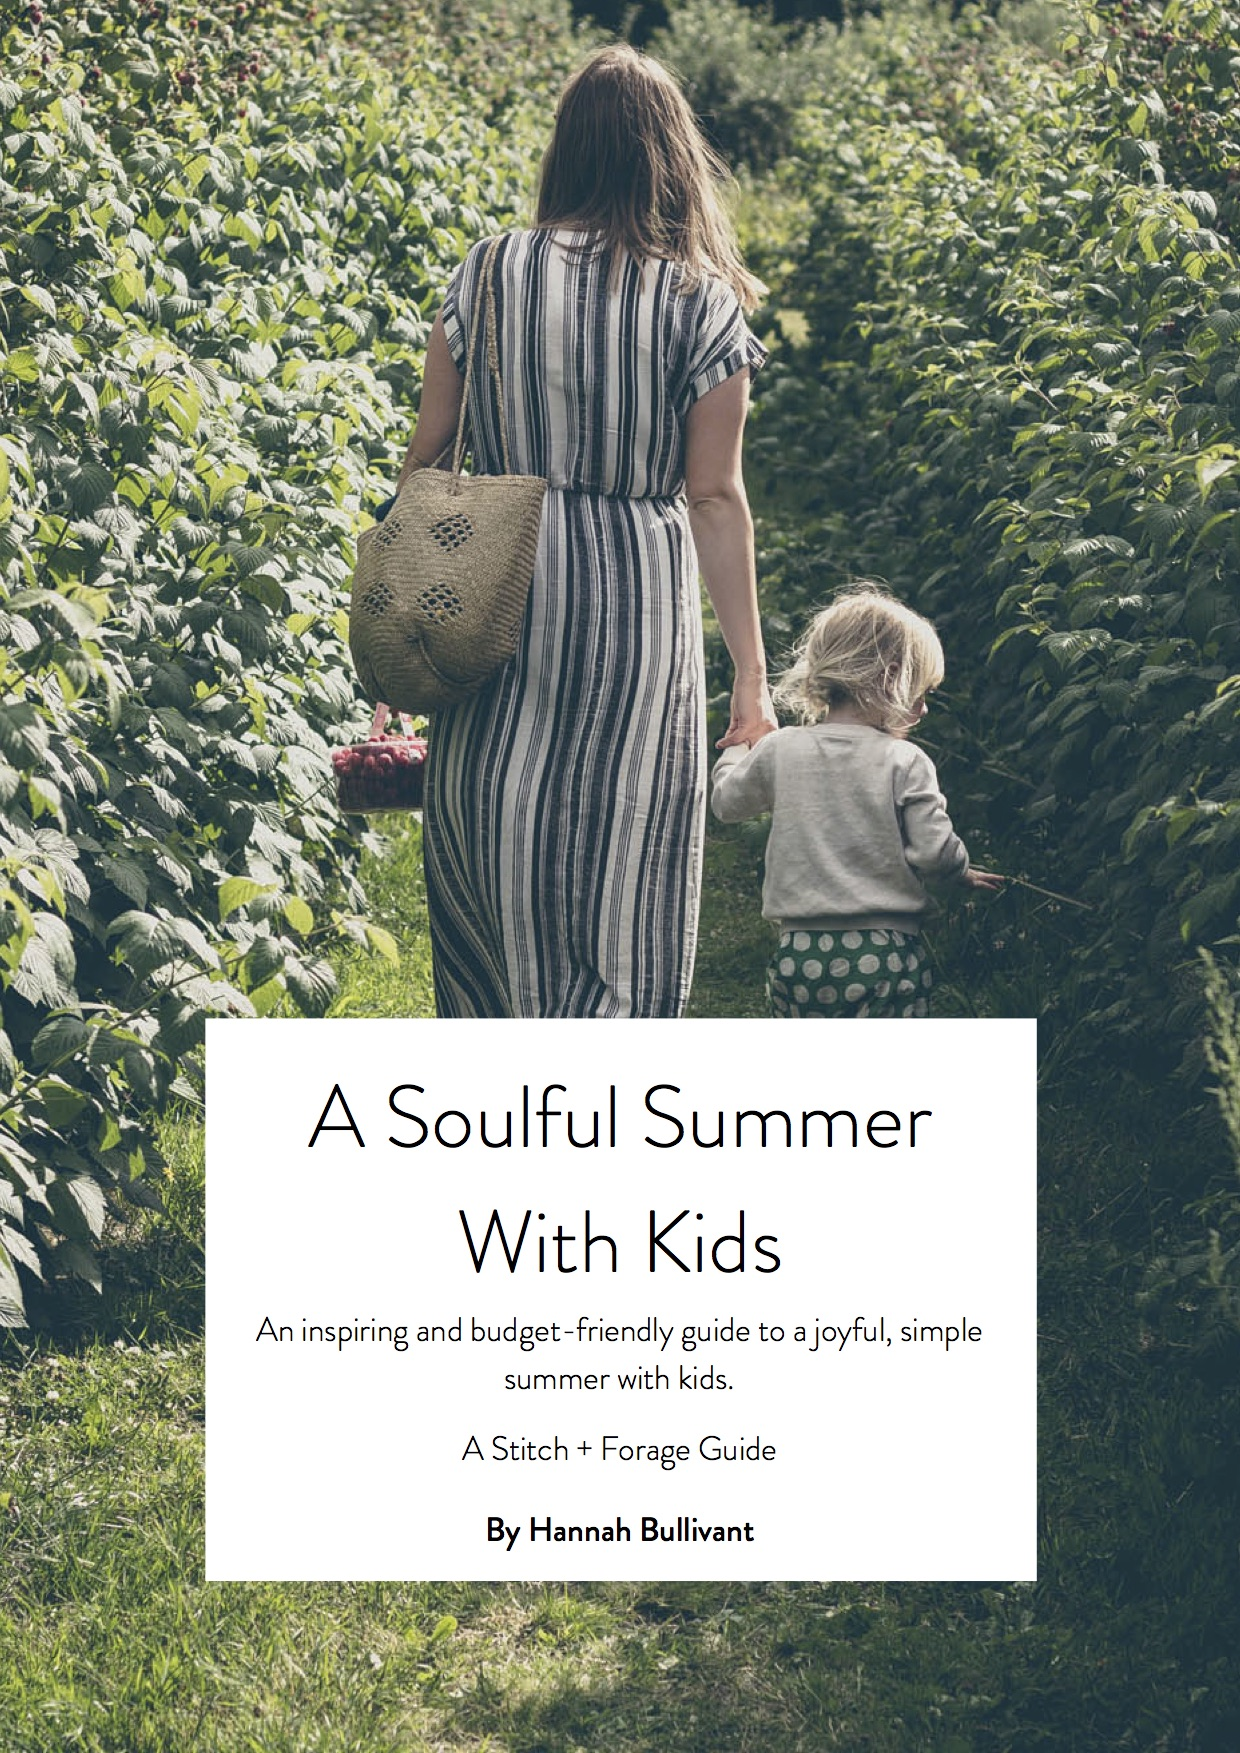 A Soulful Summer With Kids E Guide | Seeds and Stitches blog